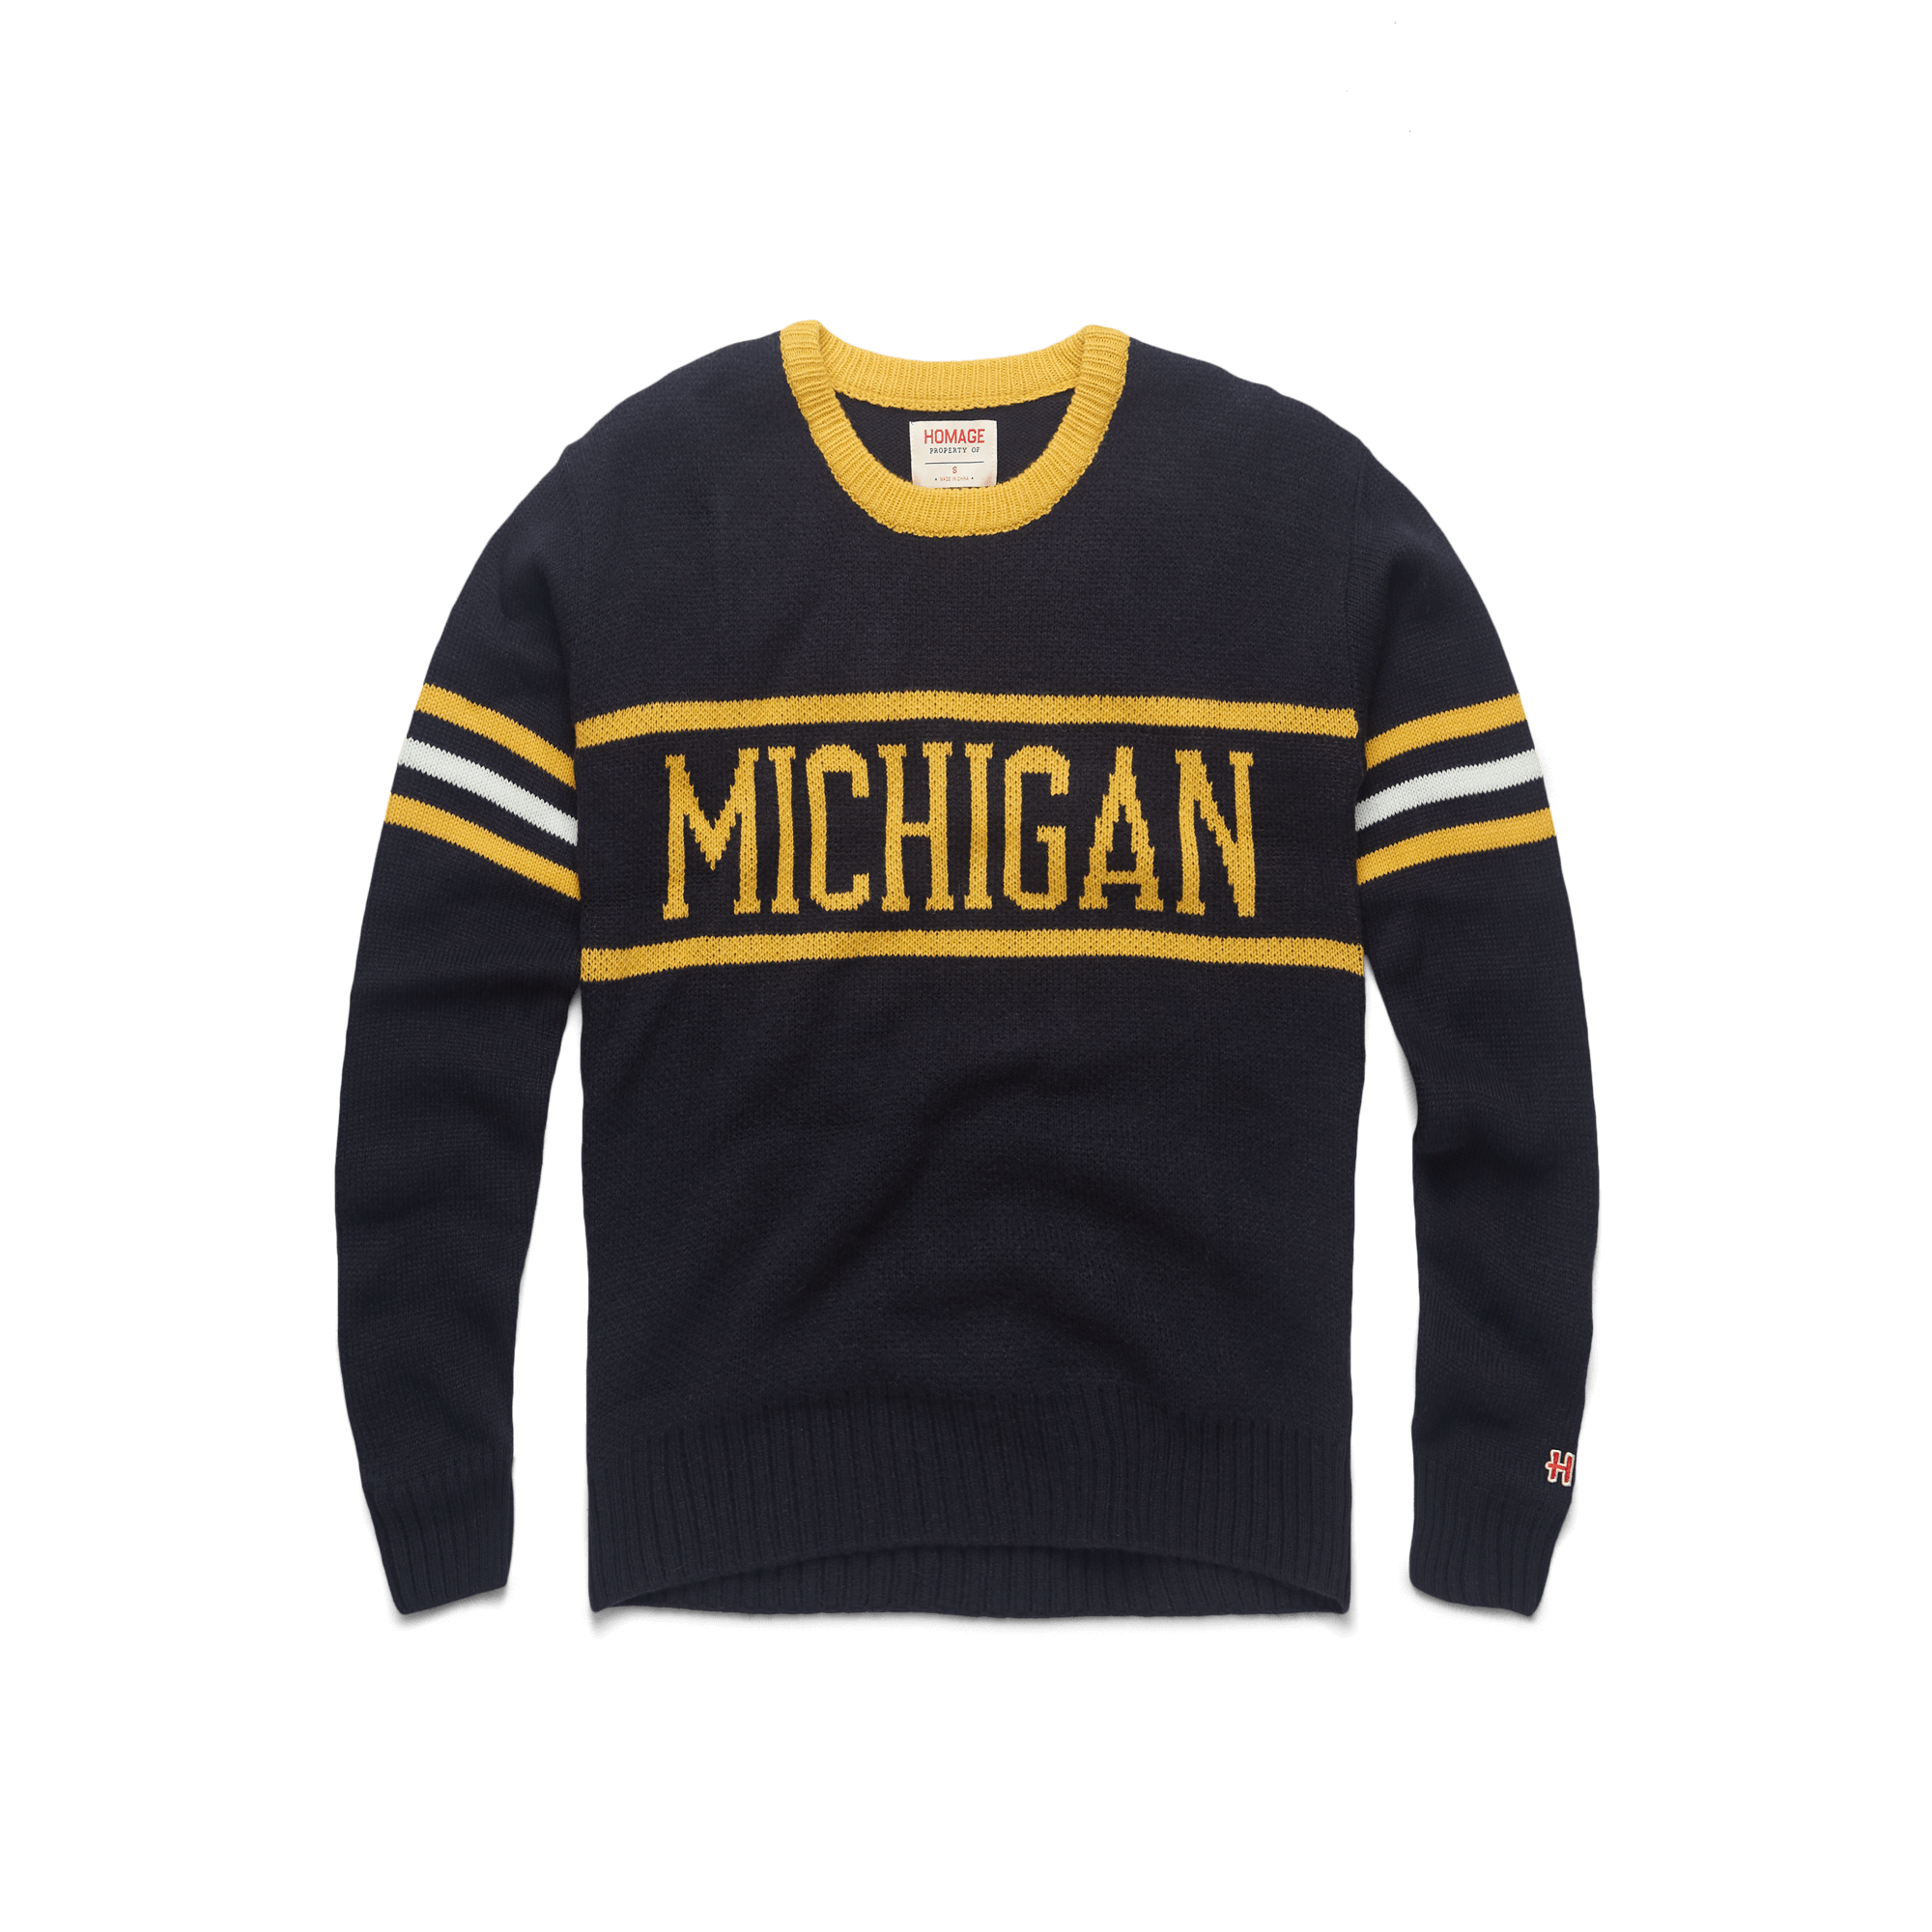 8e8add9d9f3 University Of Michigan UM Wolverines Collegiate Apparel – HOMAGE